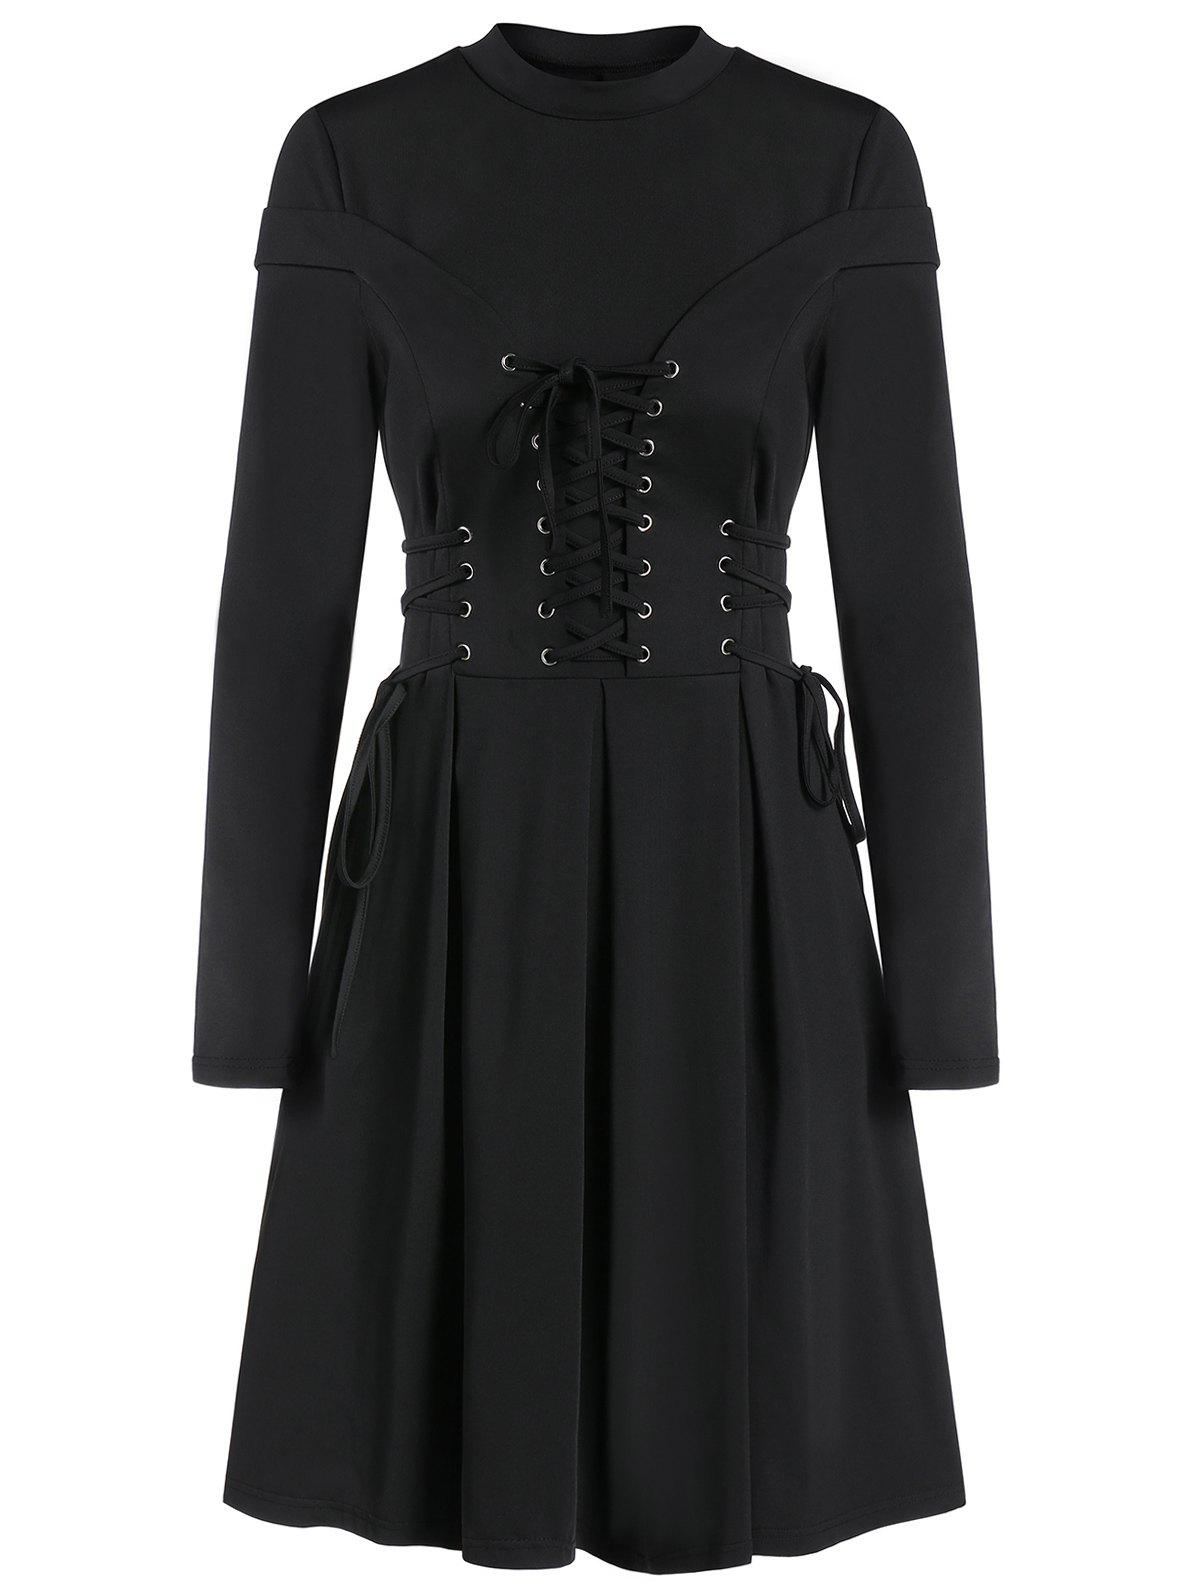 Long Sleeve Lace-up Casual Pleated Gothic Dress - BLACK L